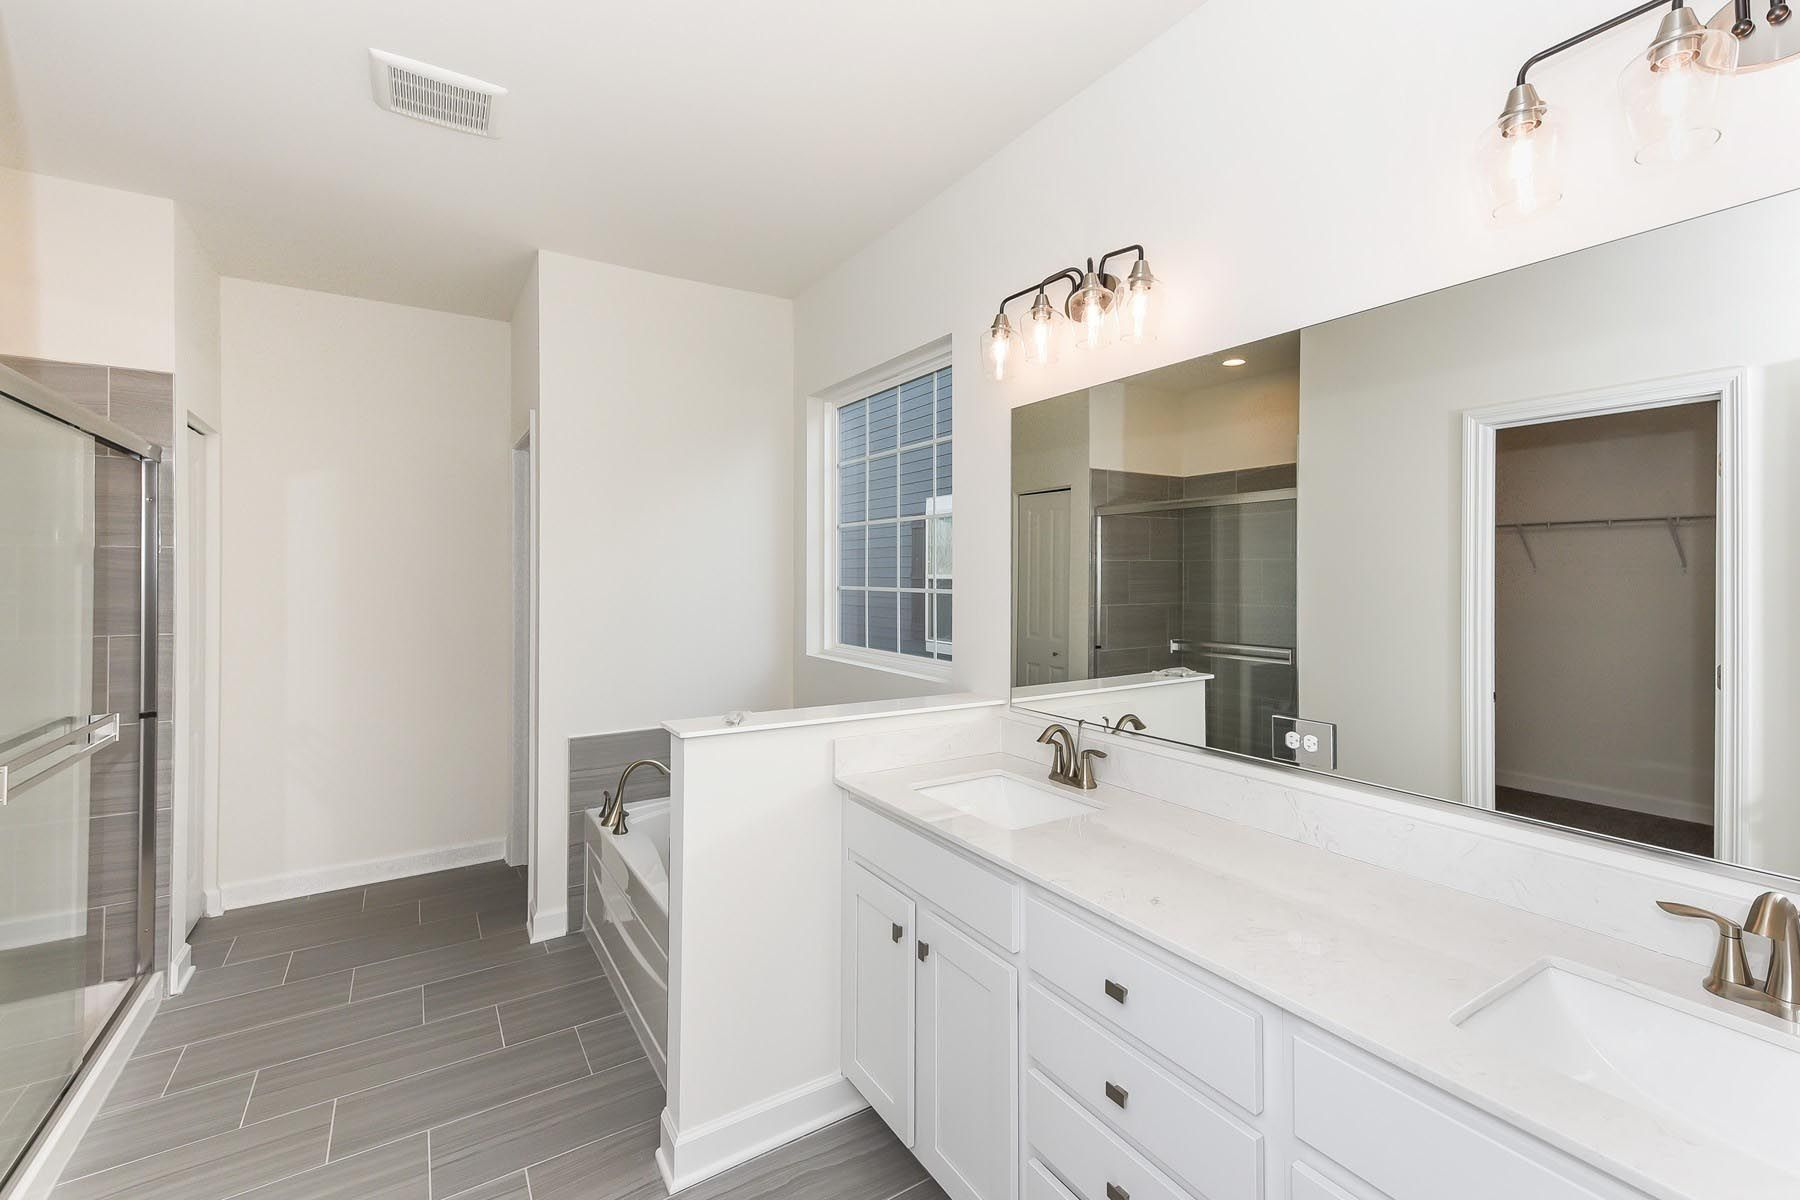 Bathroom featured in the Drexel By M/I Homes in Chicago, IL